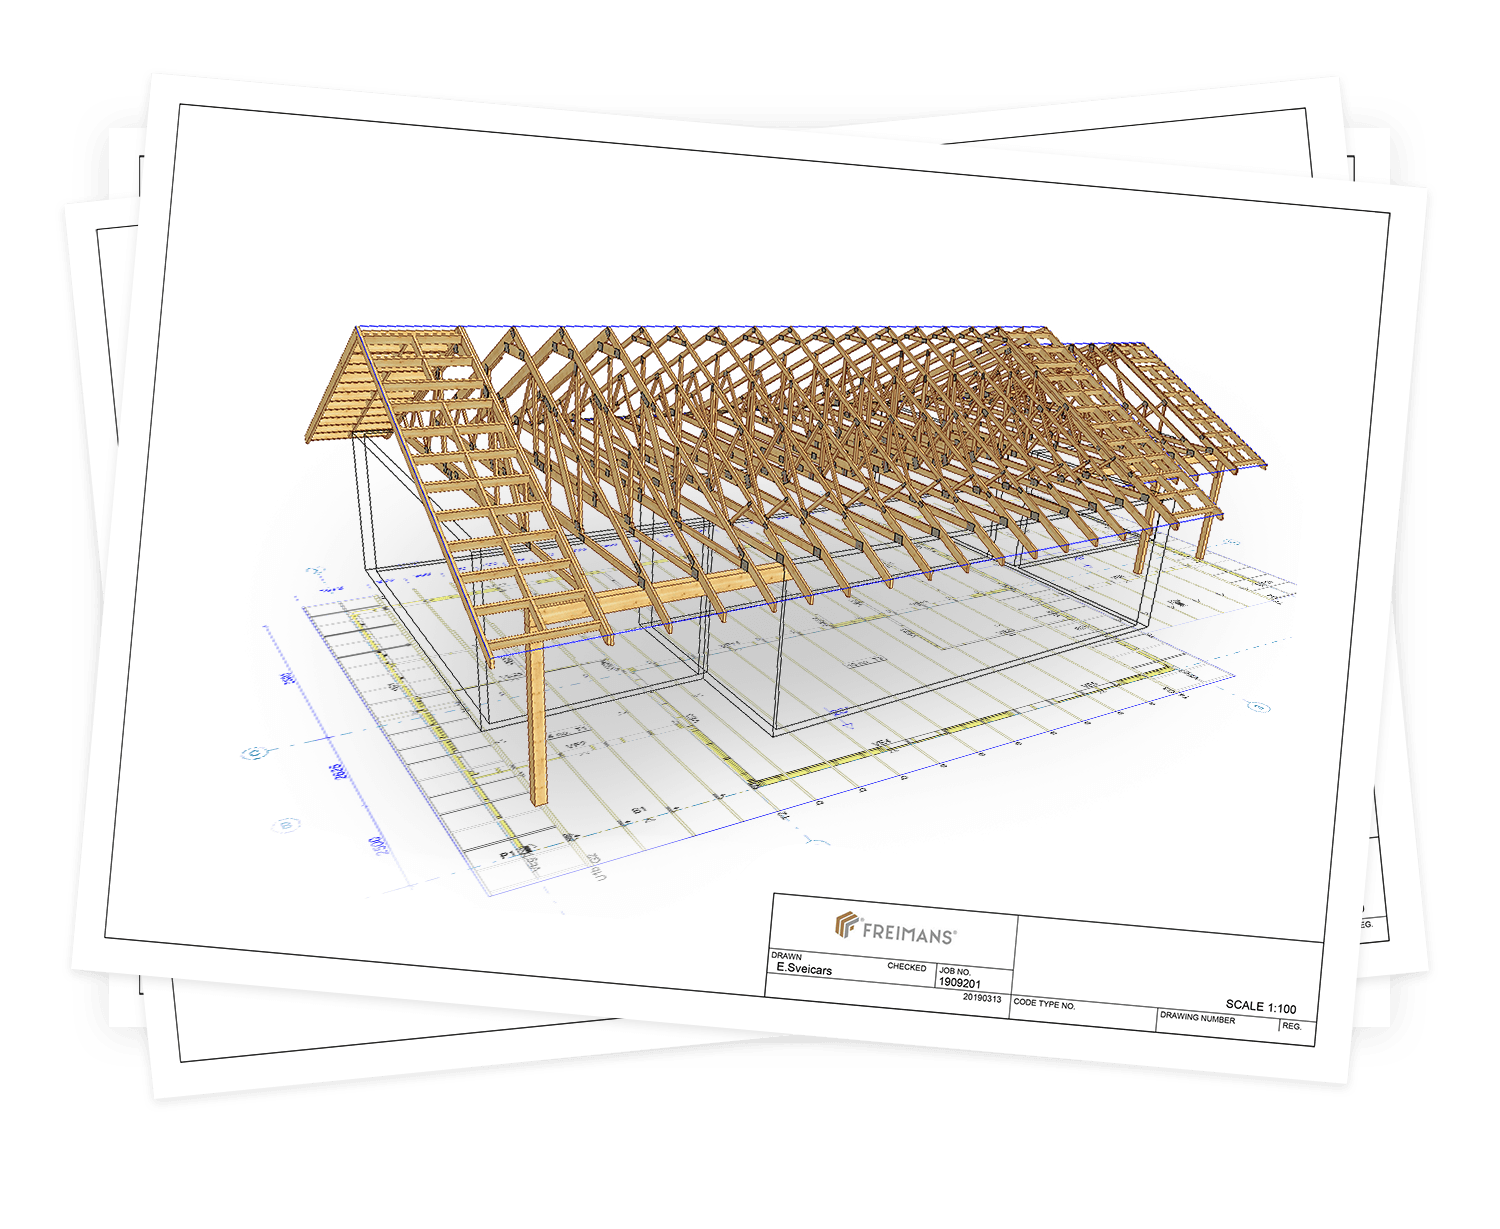 Timber trusses - Freimans